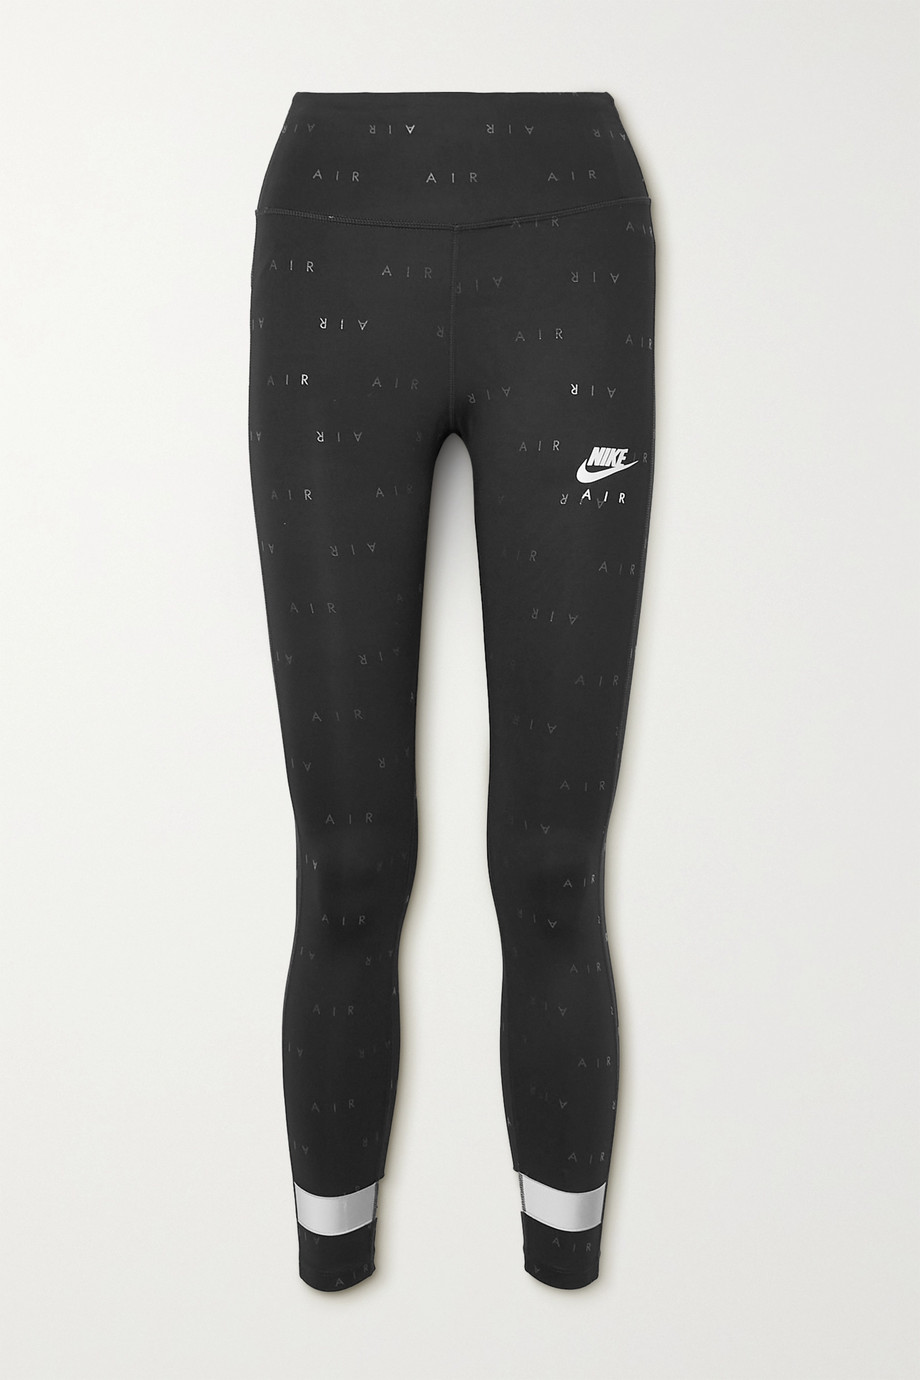 NIKE Air printed Dri-FIT leggings